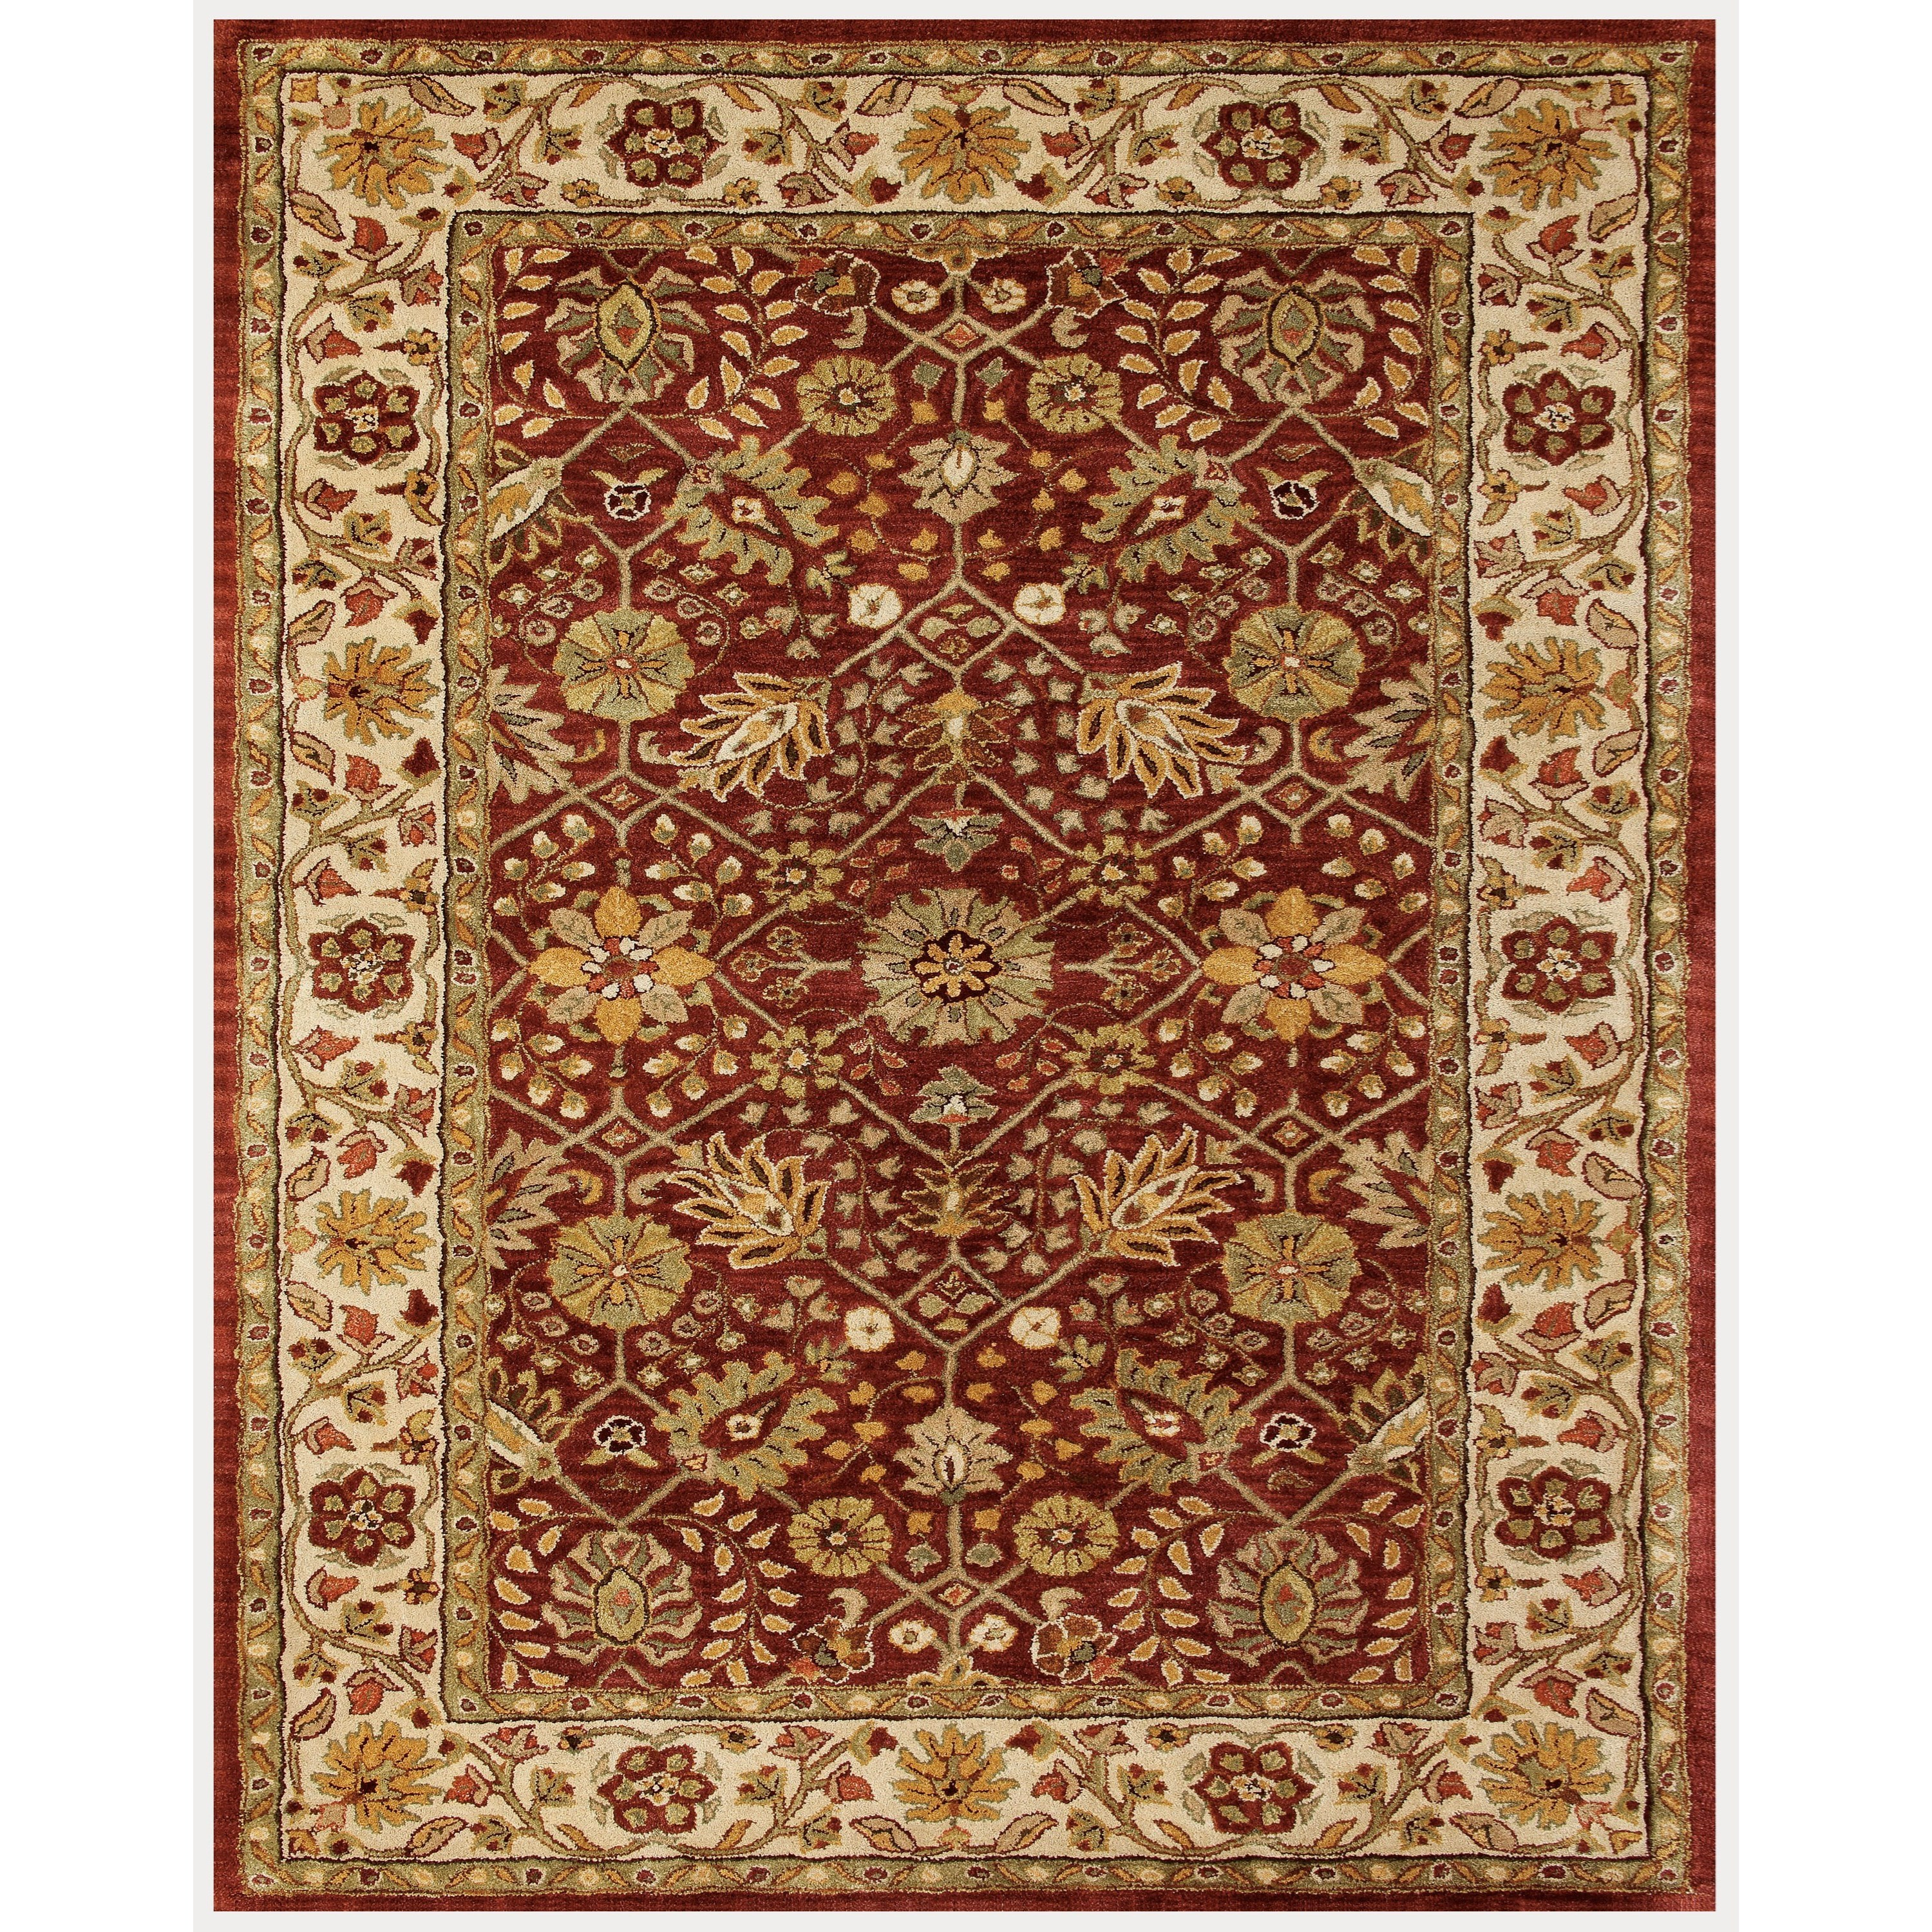 "Alexandra Cranberry/Ivory 9'-3"" x 13' Area Rug by Feizy Rugs at Sprintz Furniture"